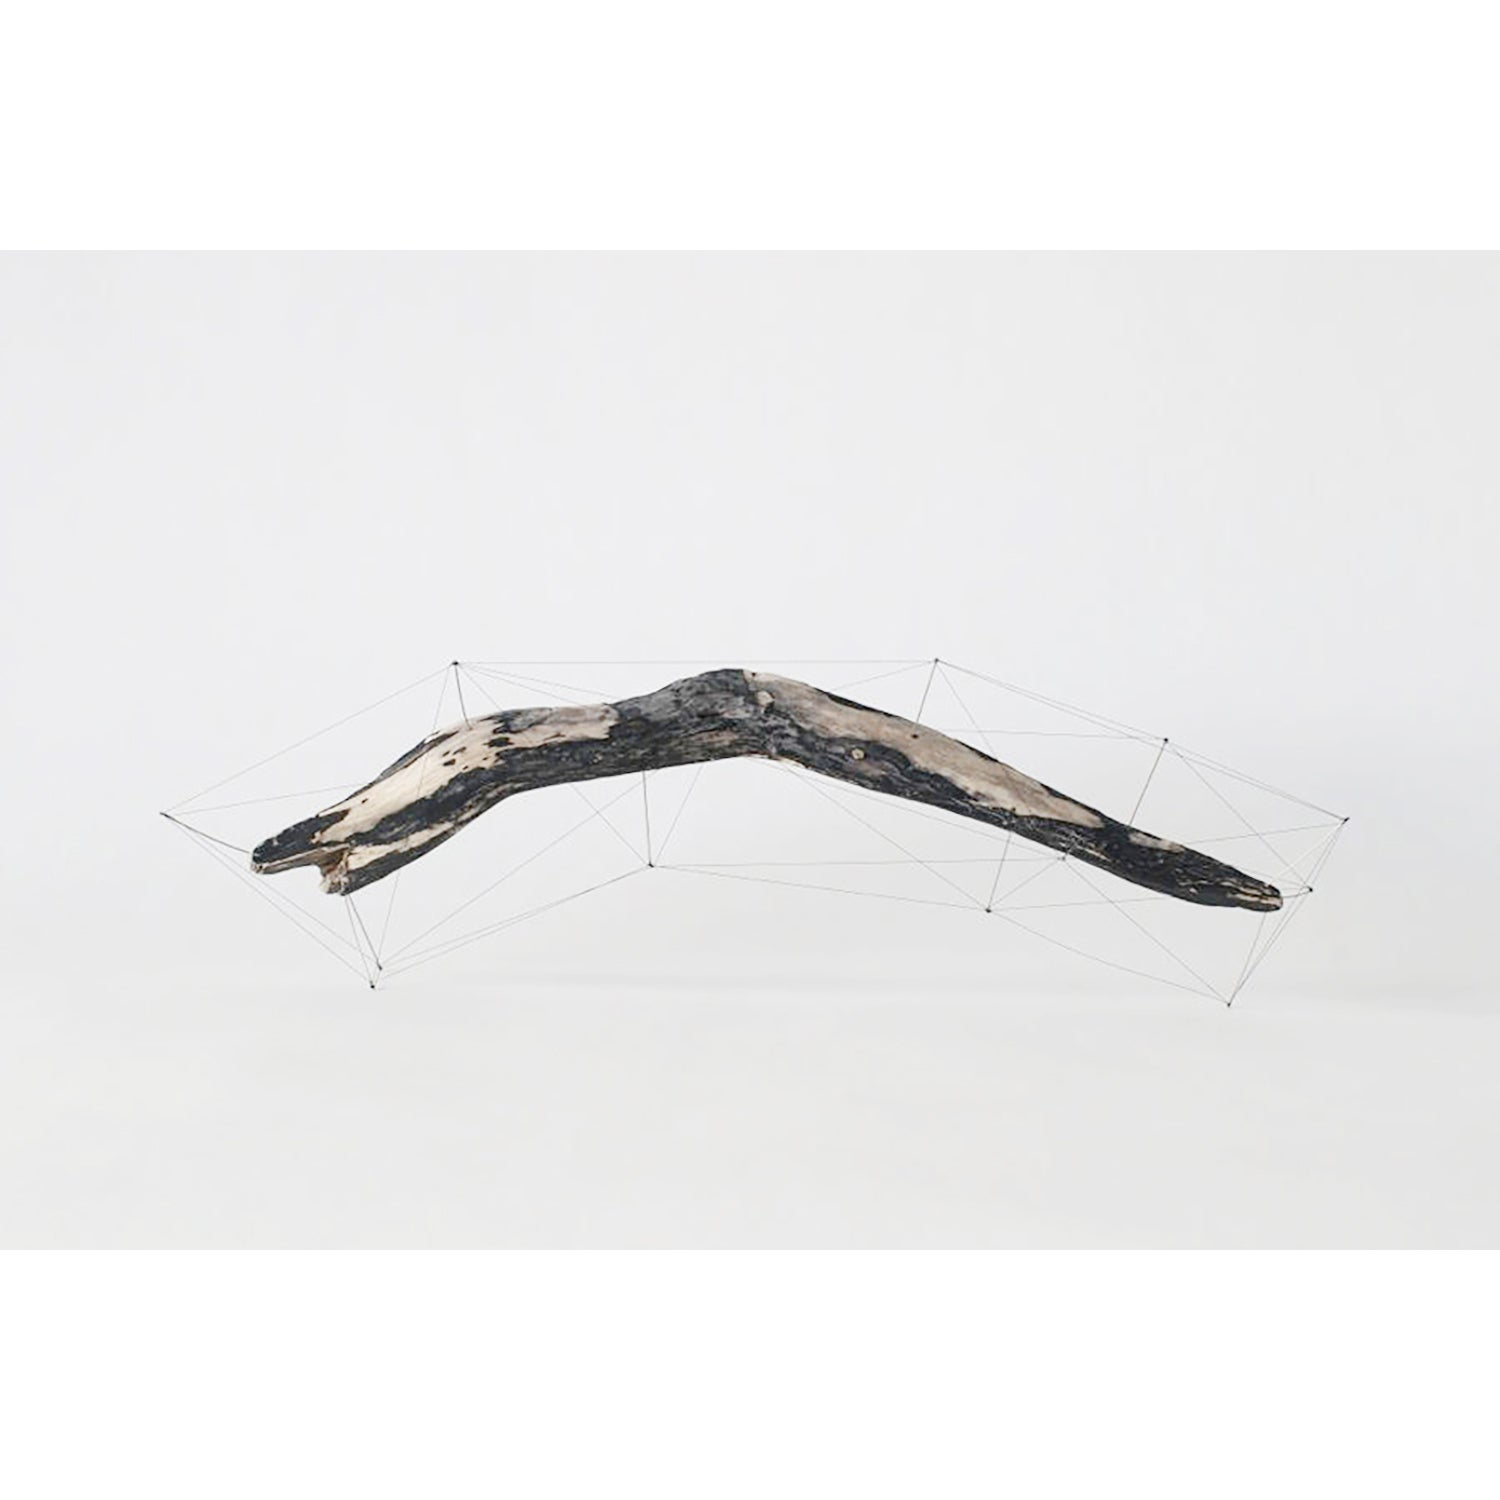 Crust of the Polygon 05 Norihiko Terayama Driftwood Sculpture